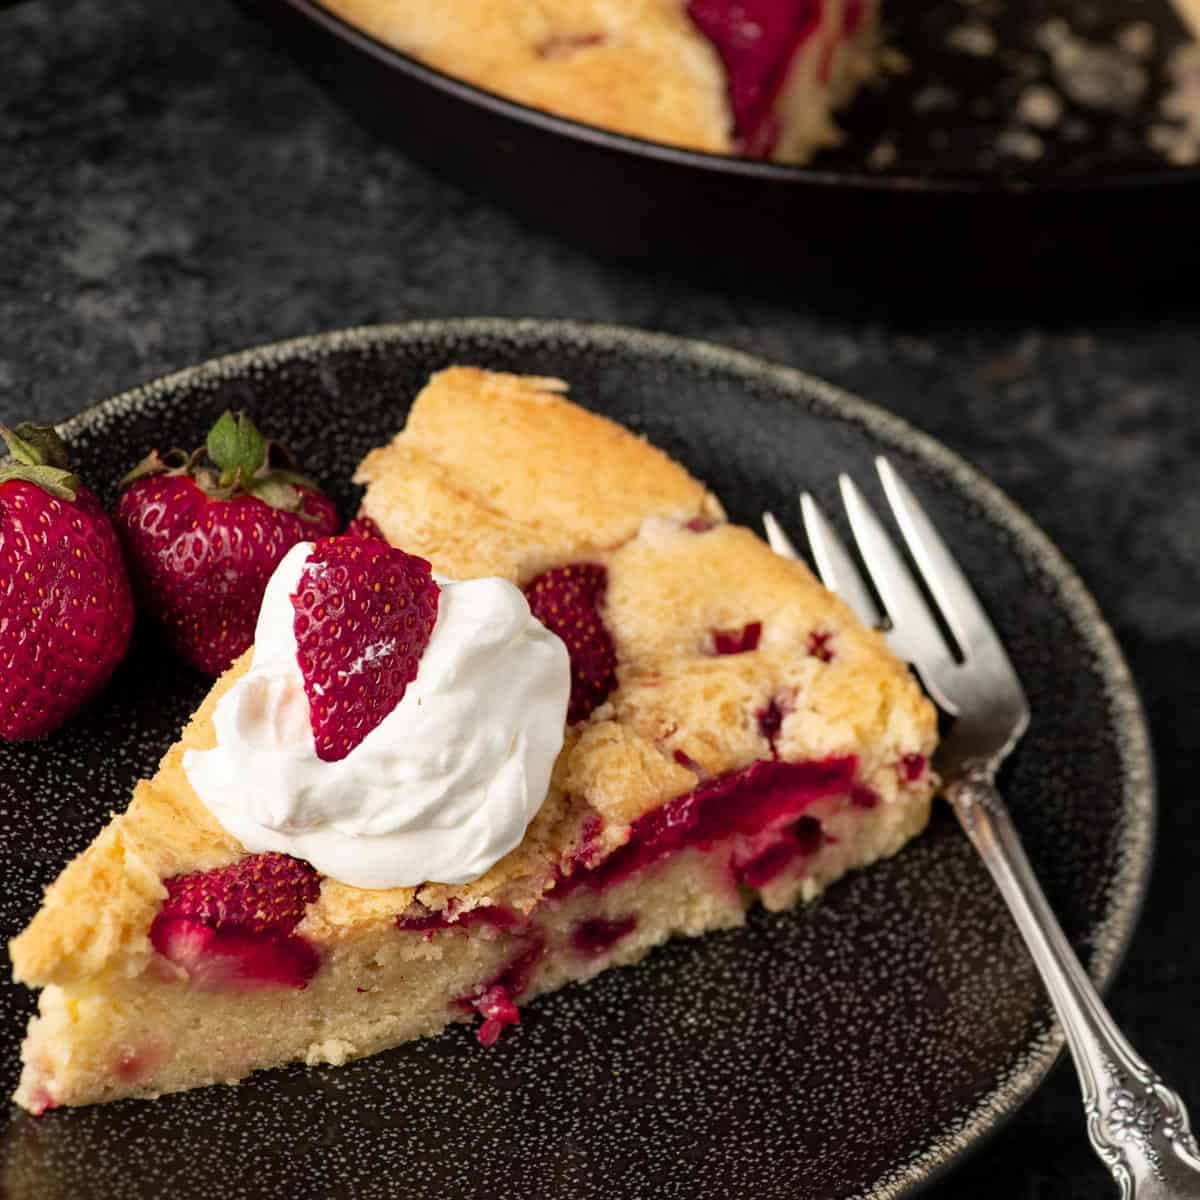 Strawberry pound cake on a plate with a fork